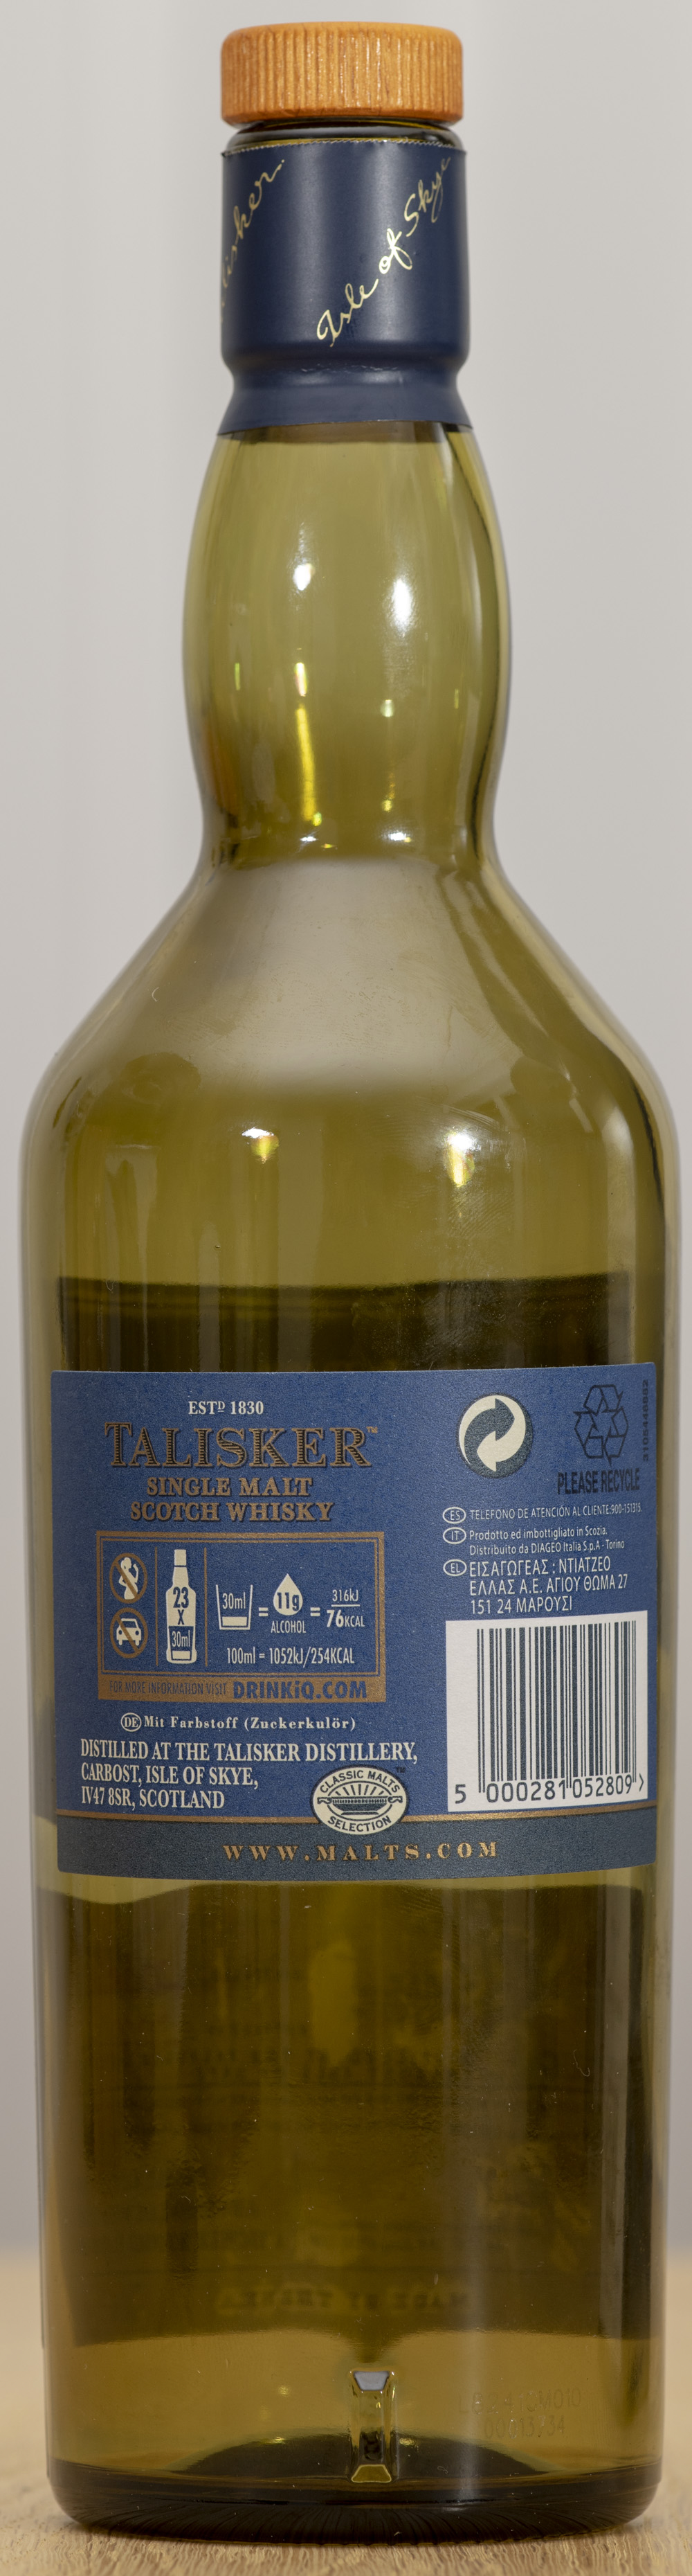 Billede: PHC_1583 - Talisker Distillers edition - bottle back.jpg